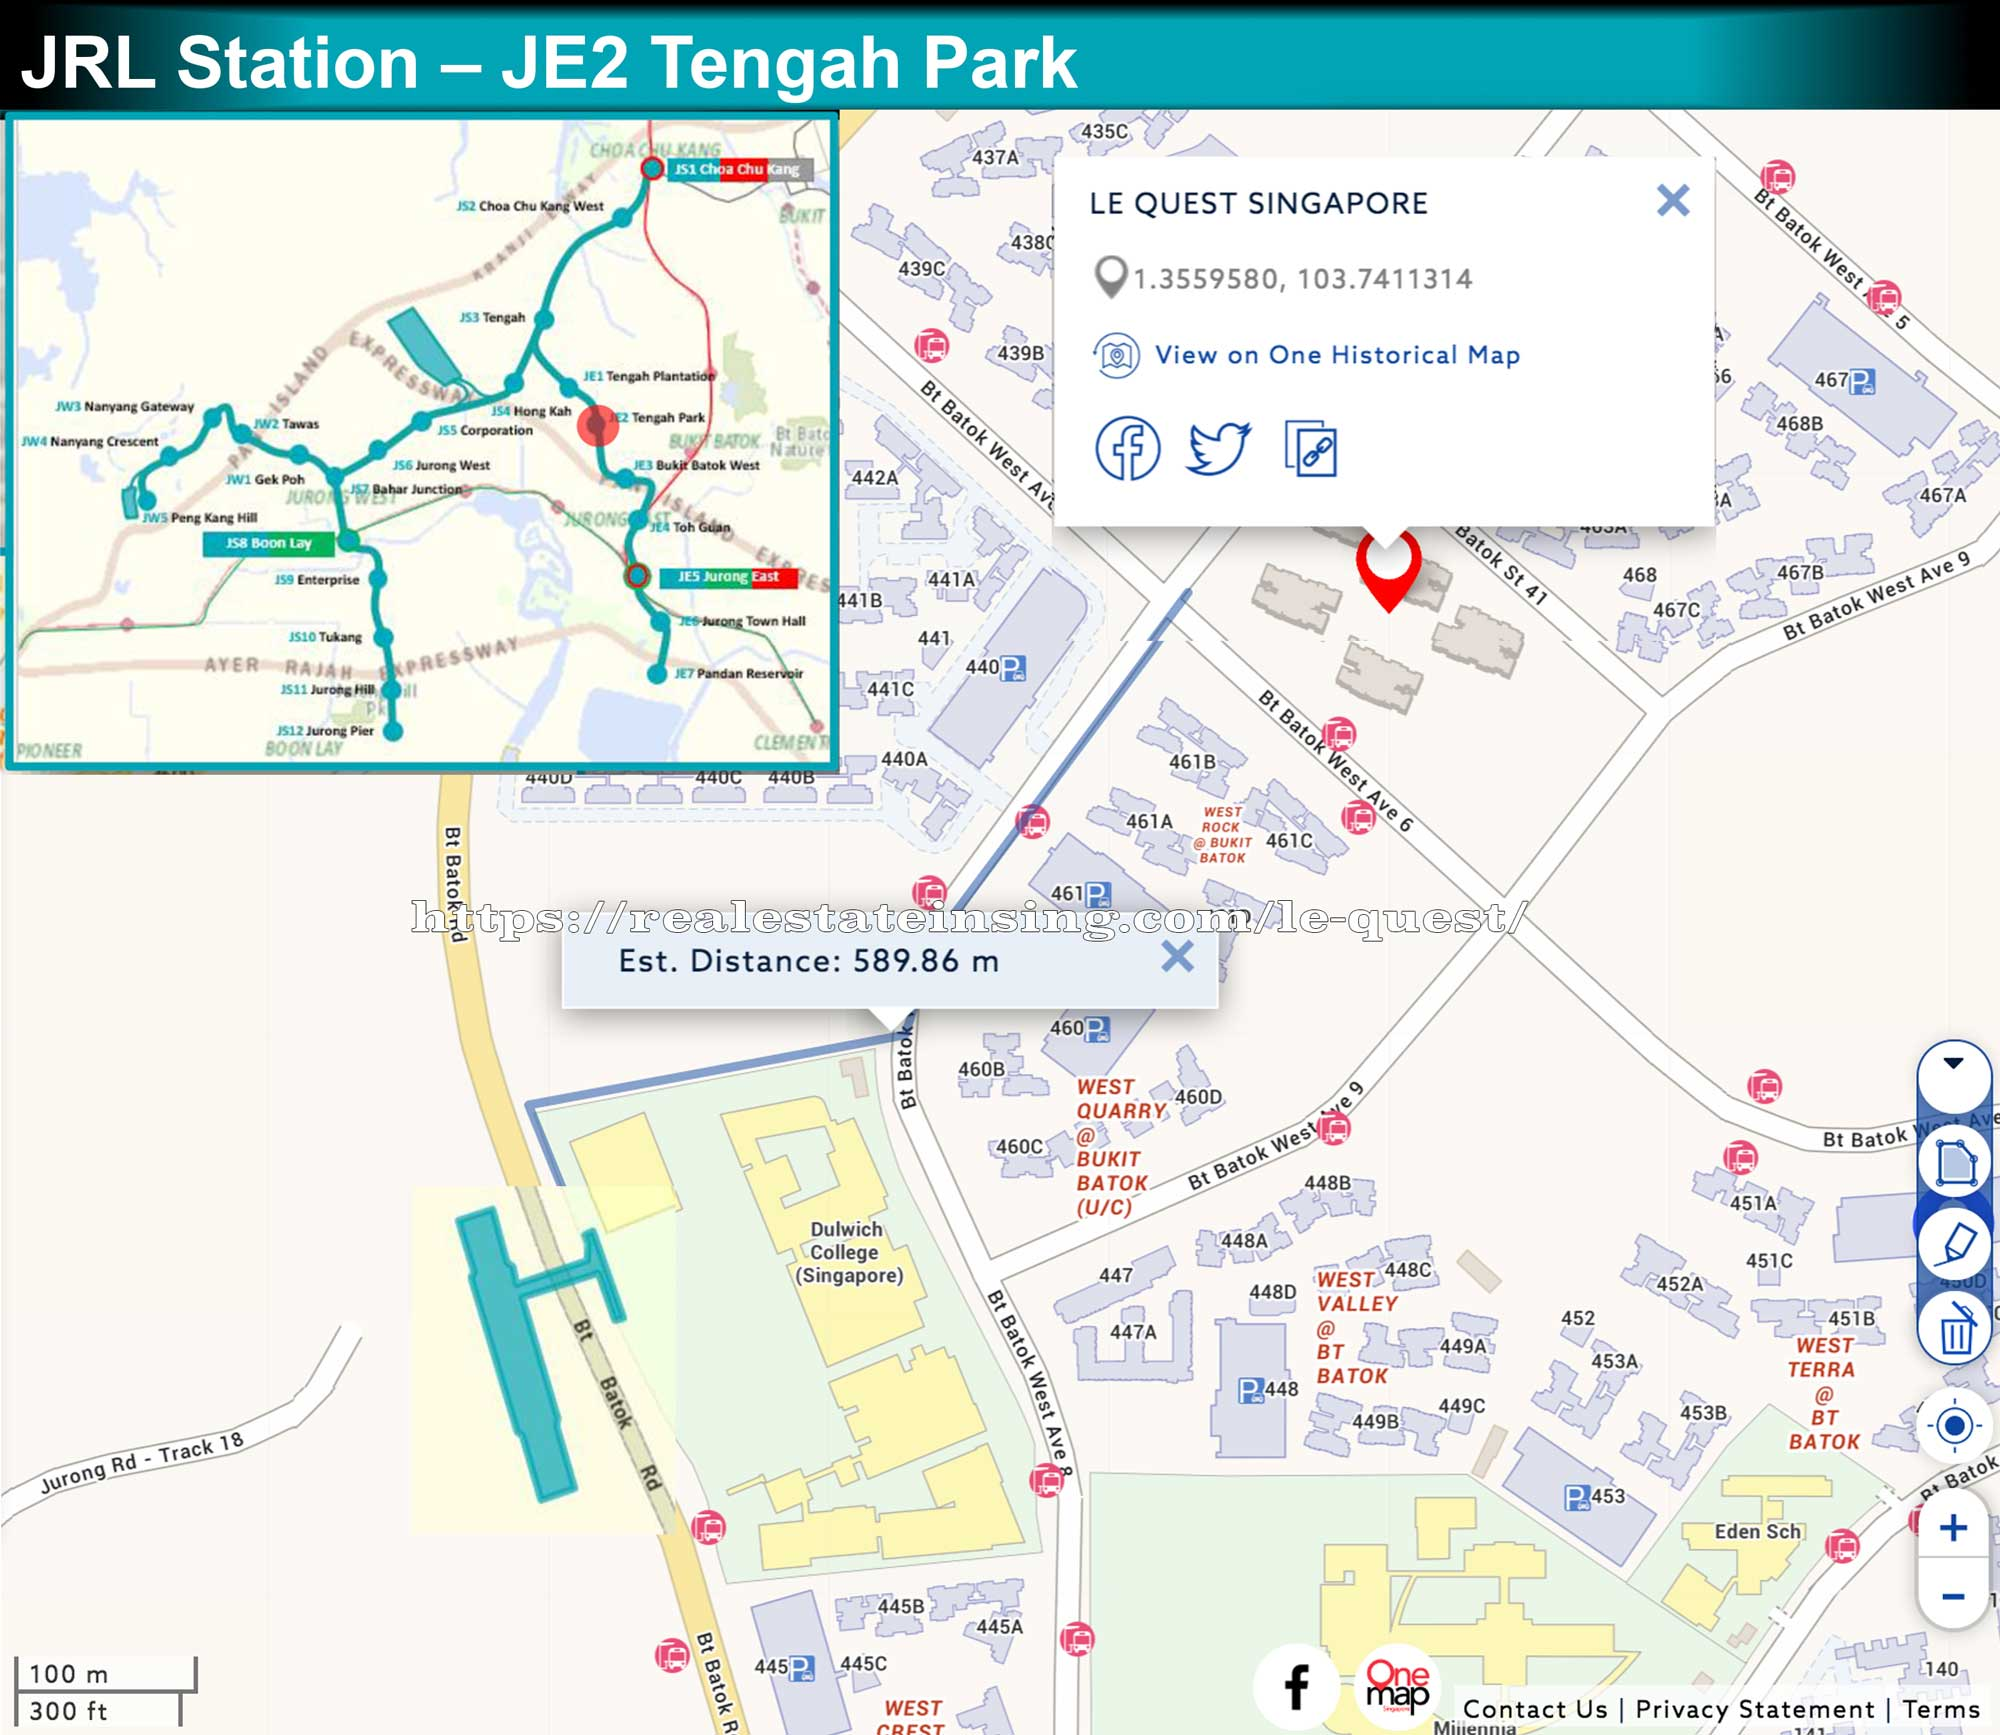 Le Quest approximately 600m to future Tengah Park MRT on Jurong Region Line